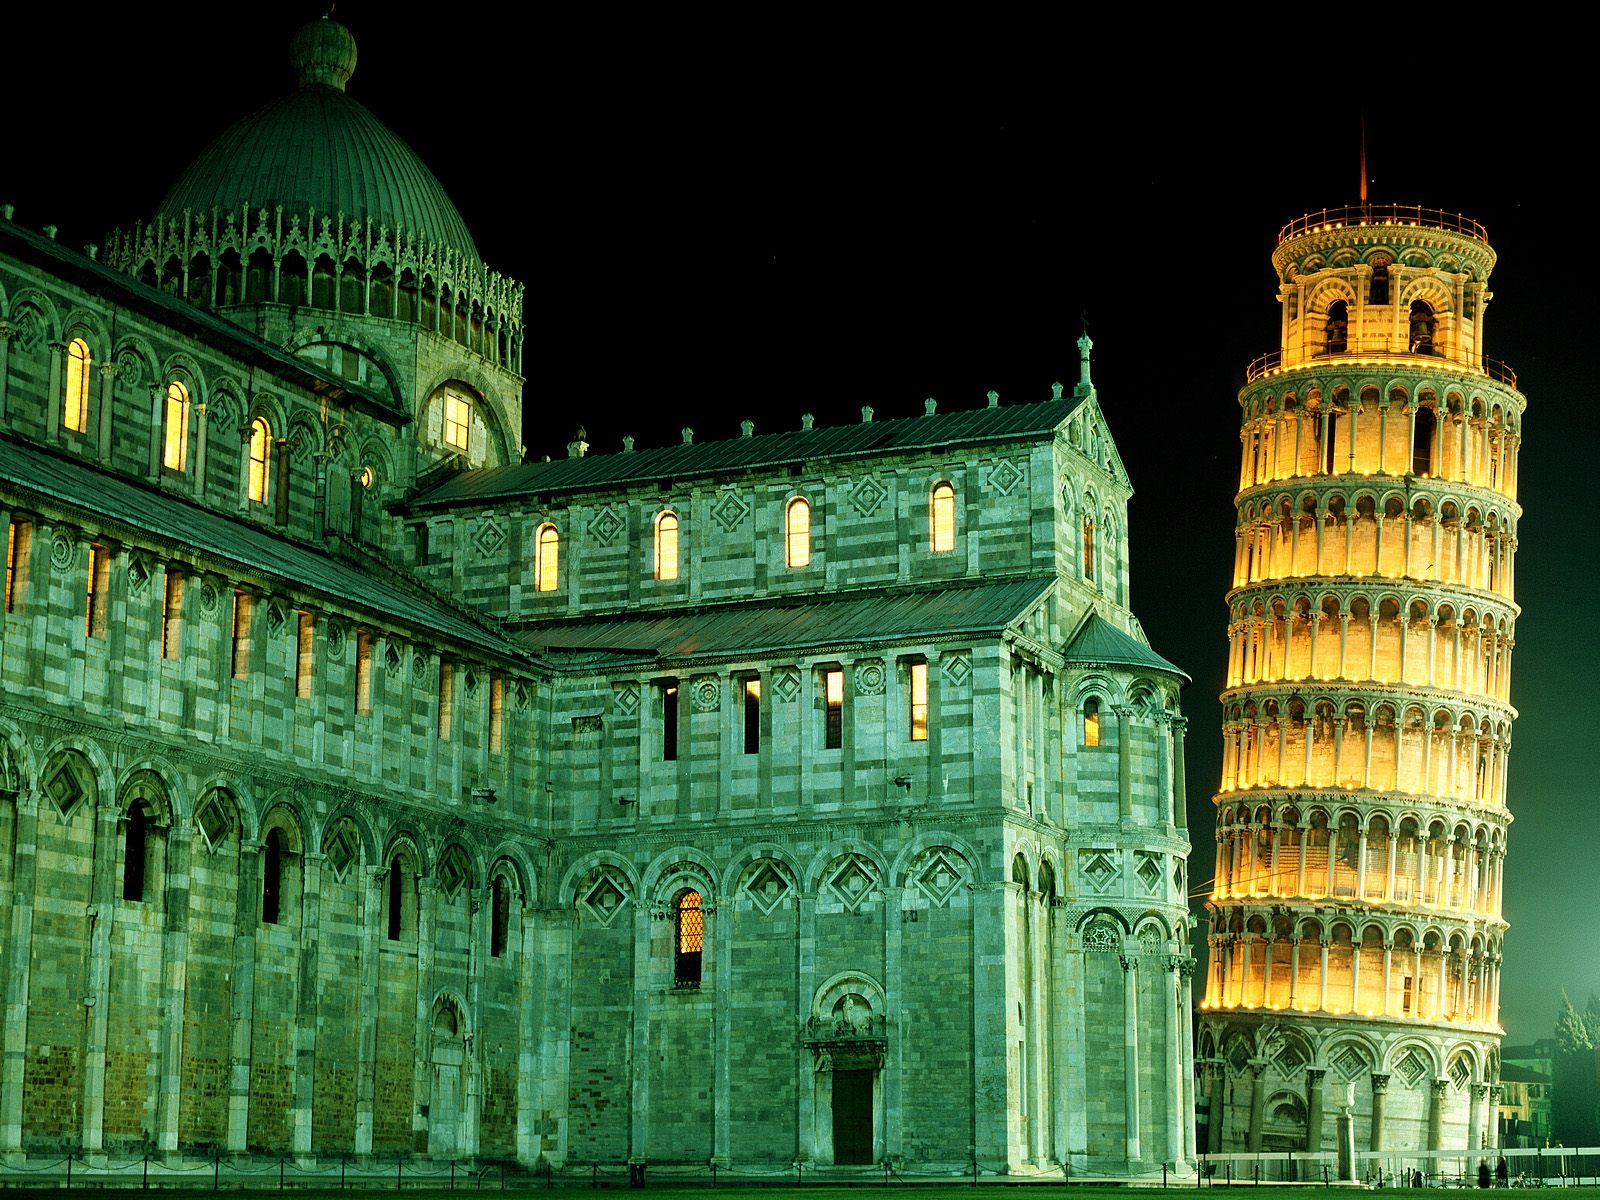 Duomo and Leaning Tower